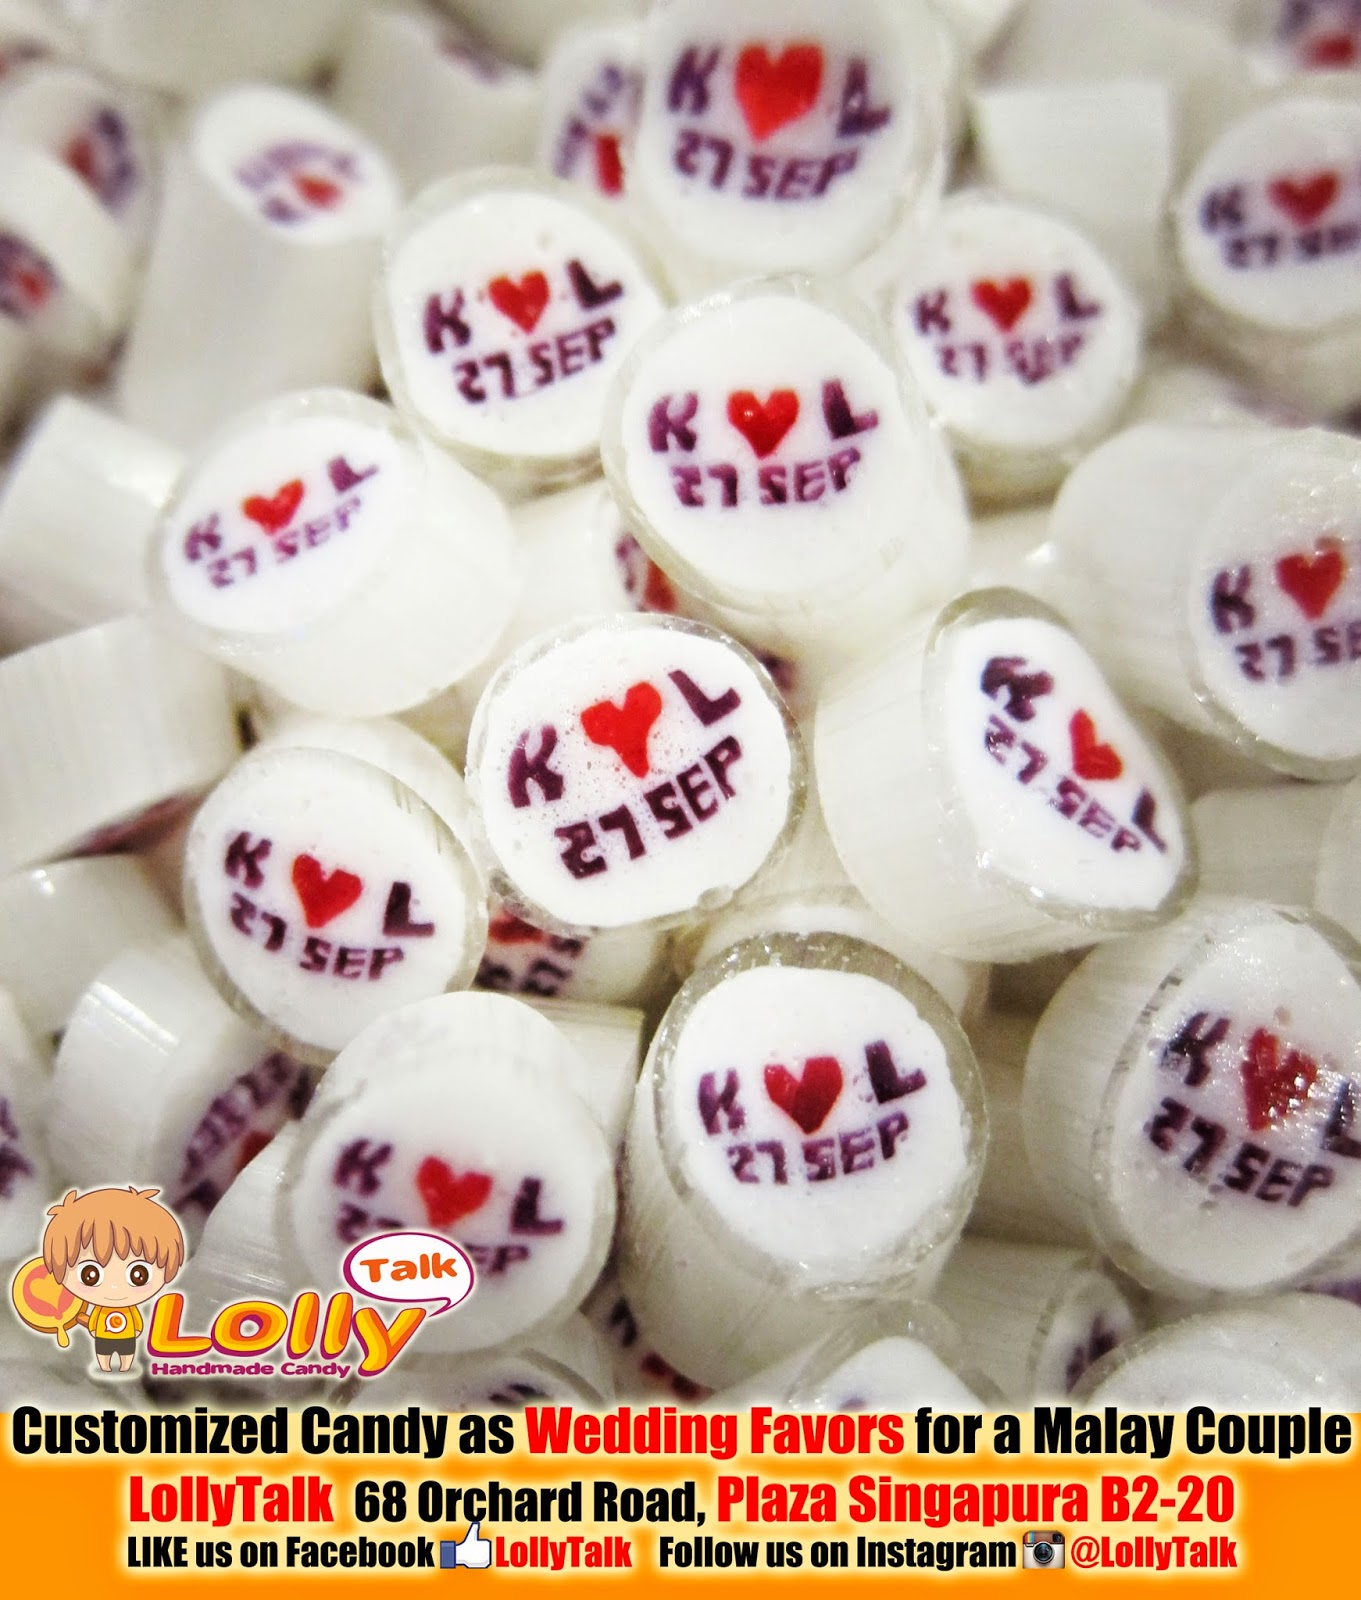 Weddings.Rocks :: Customized Handmade Rock Candy as Wedding Favors